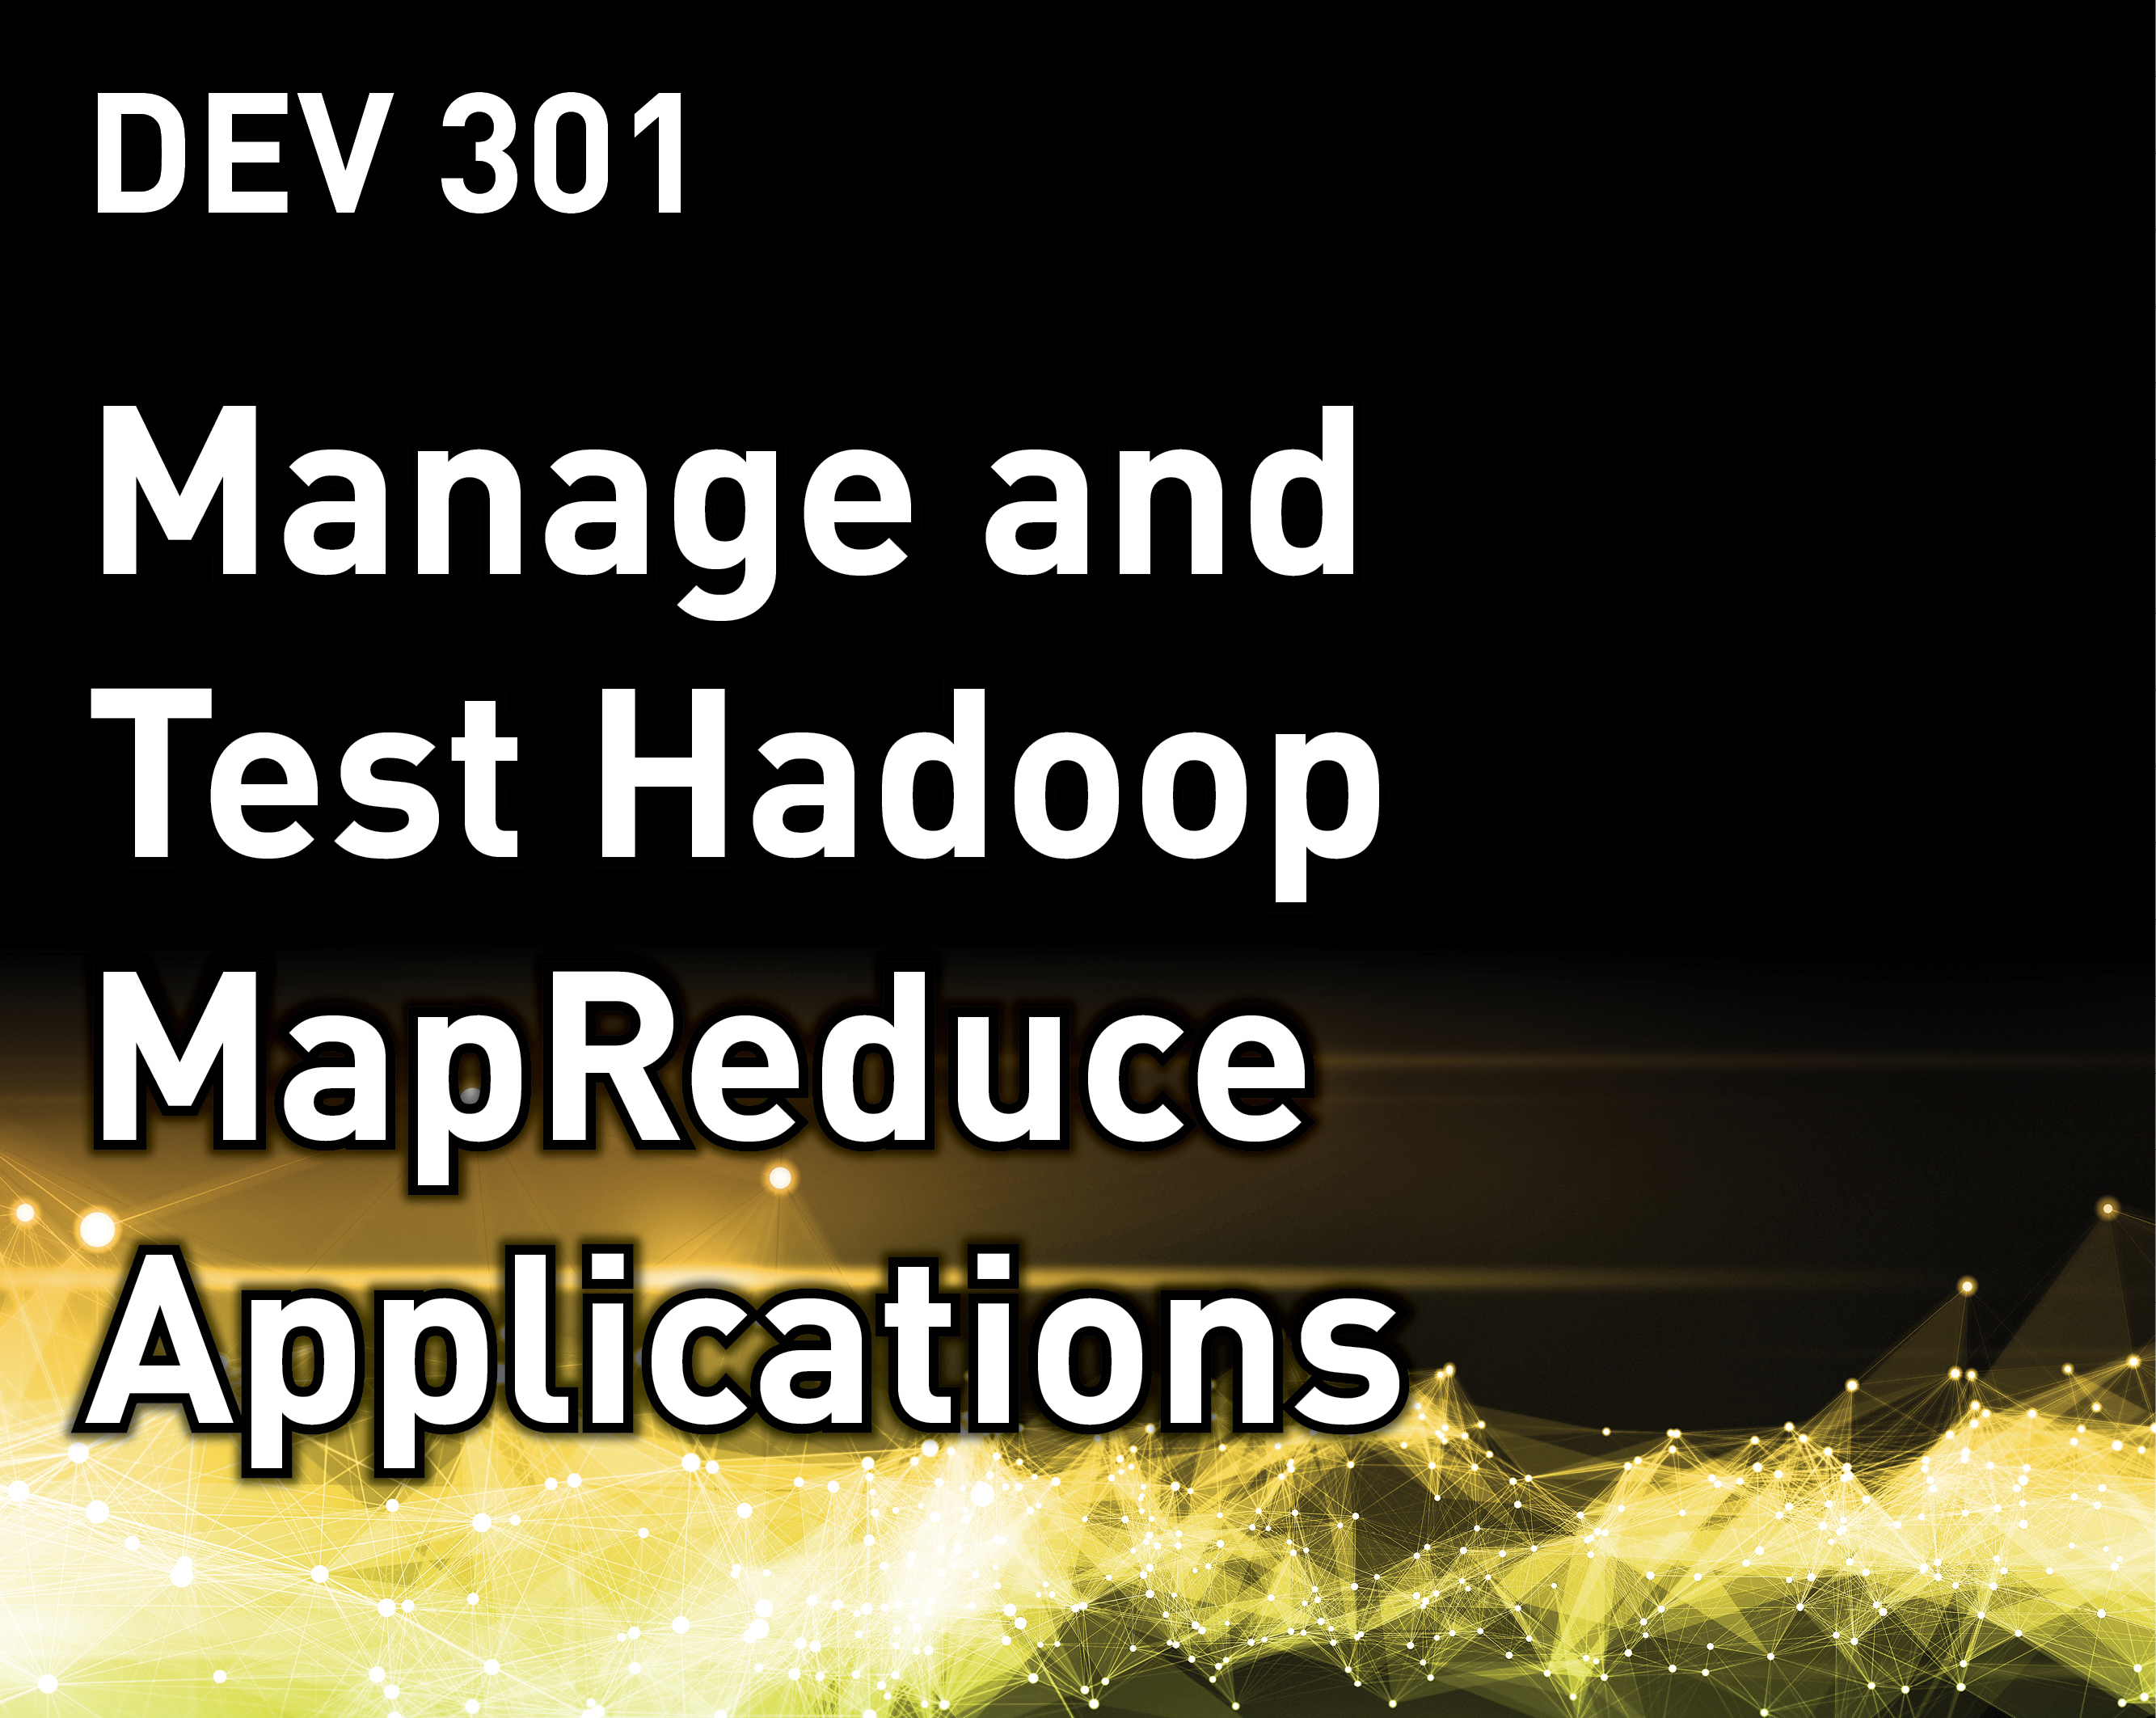 Manage and Test Hadoop MapReduce Applications